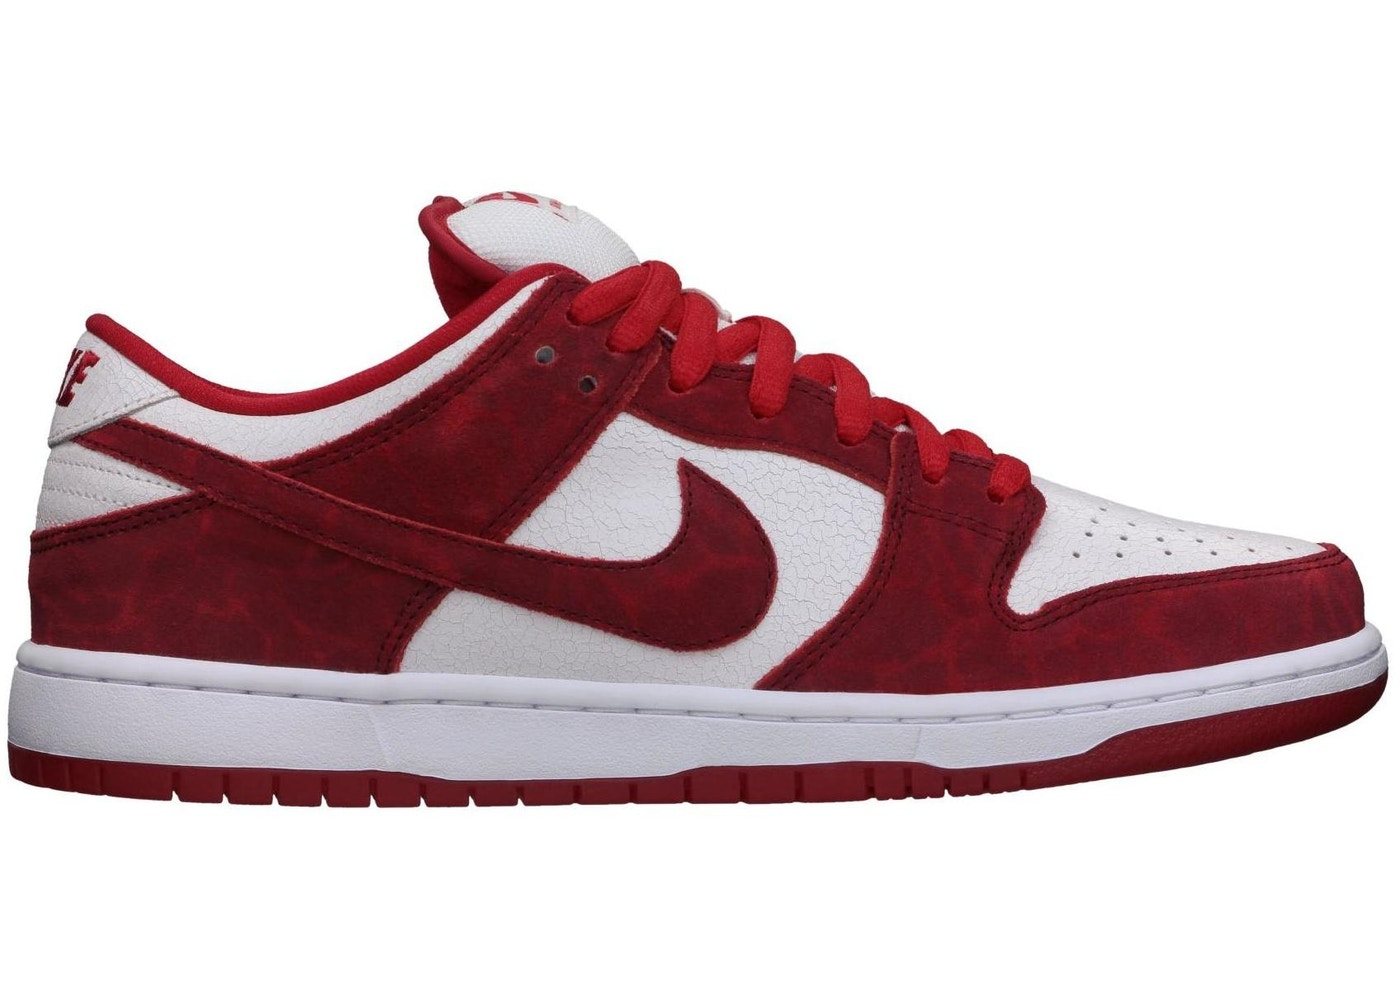 Nike Dunk Sb Low Valentines Day 2014